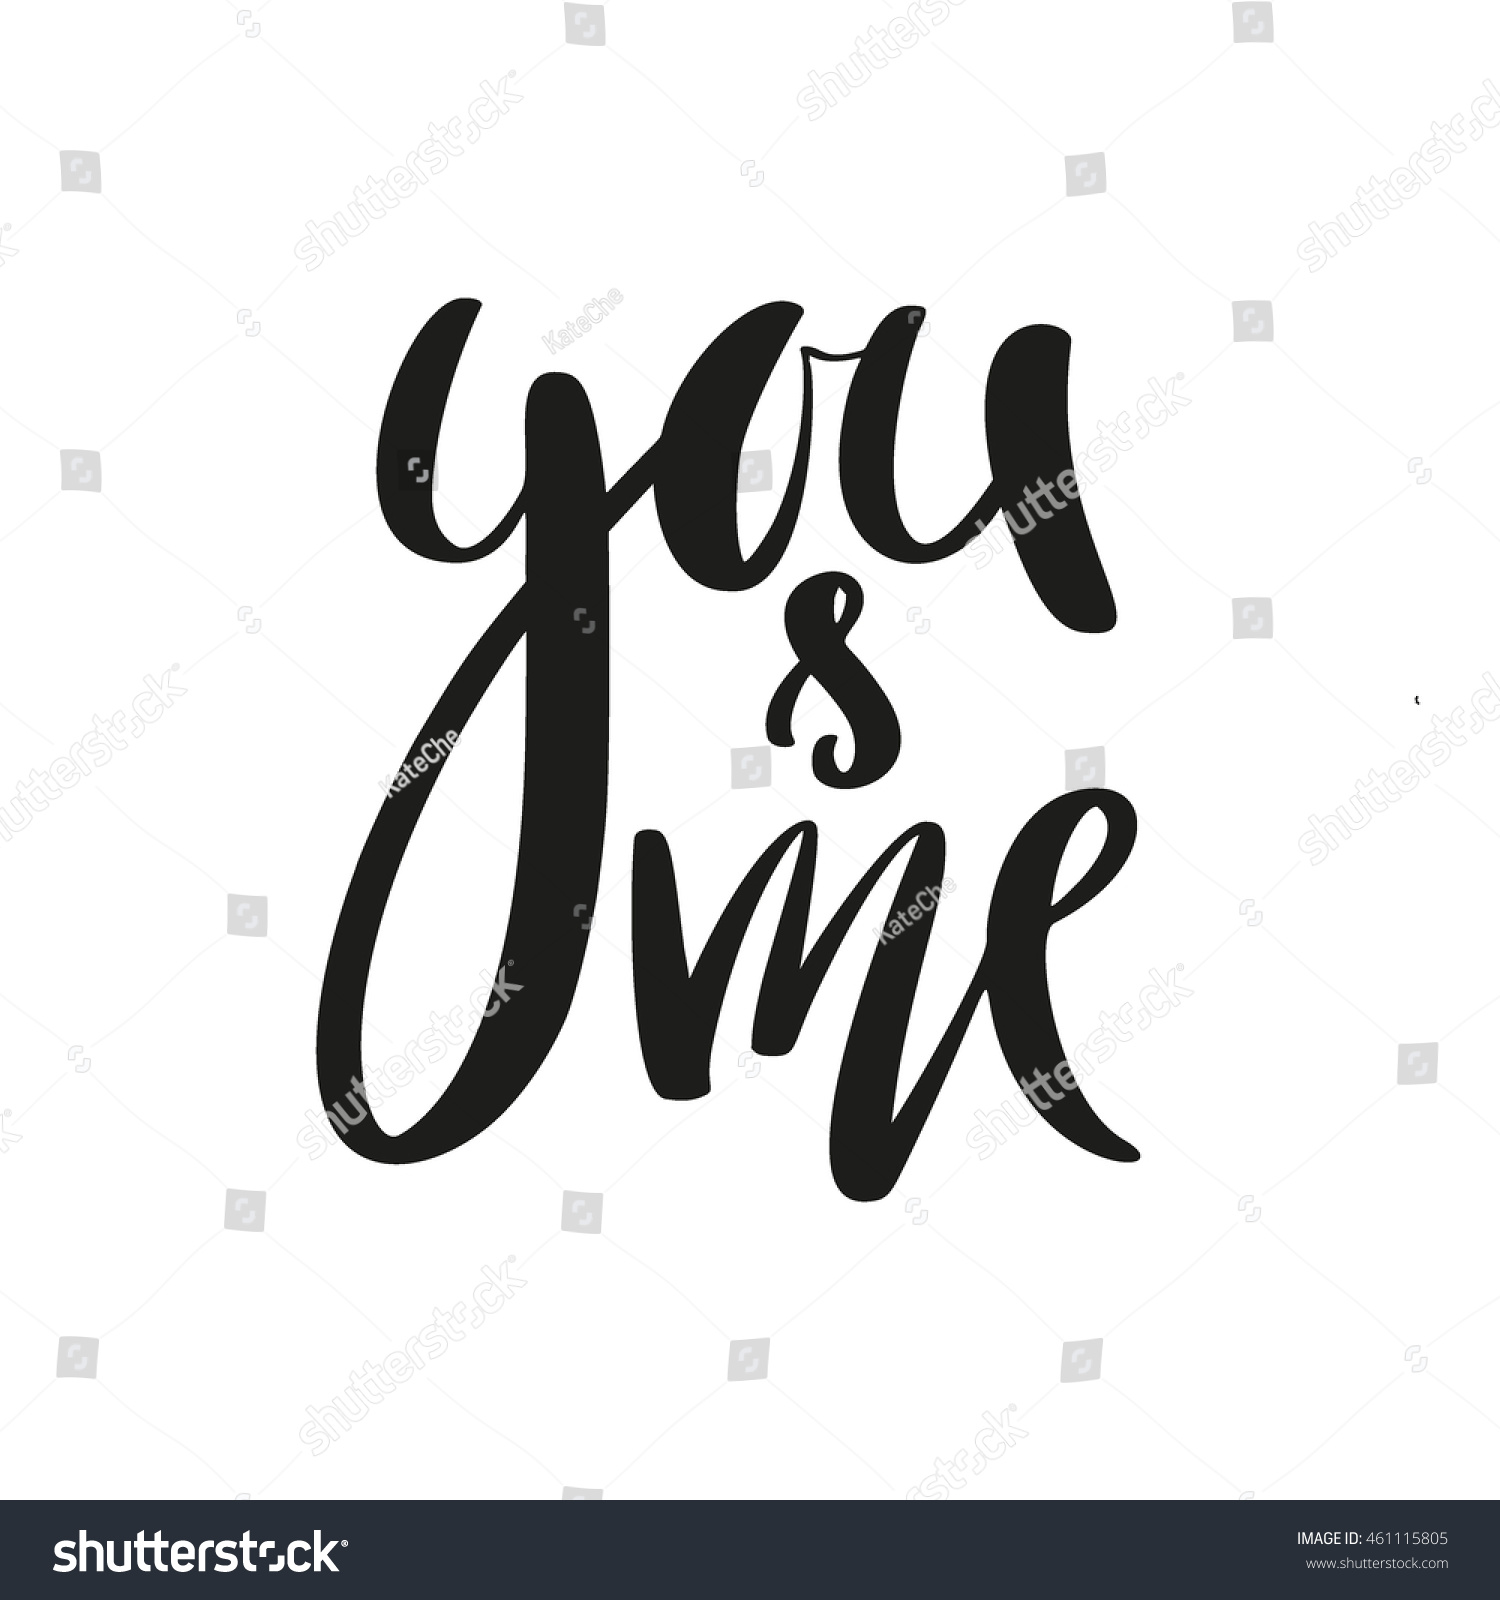 You me modern calligraphy lettering design stock vector